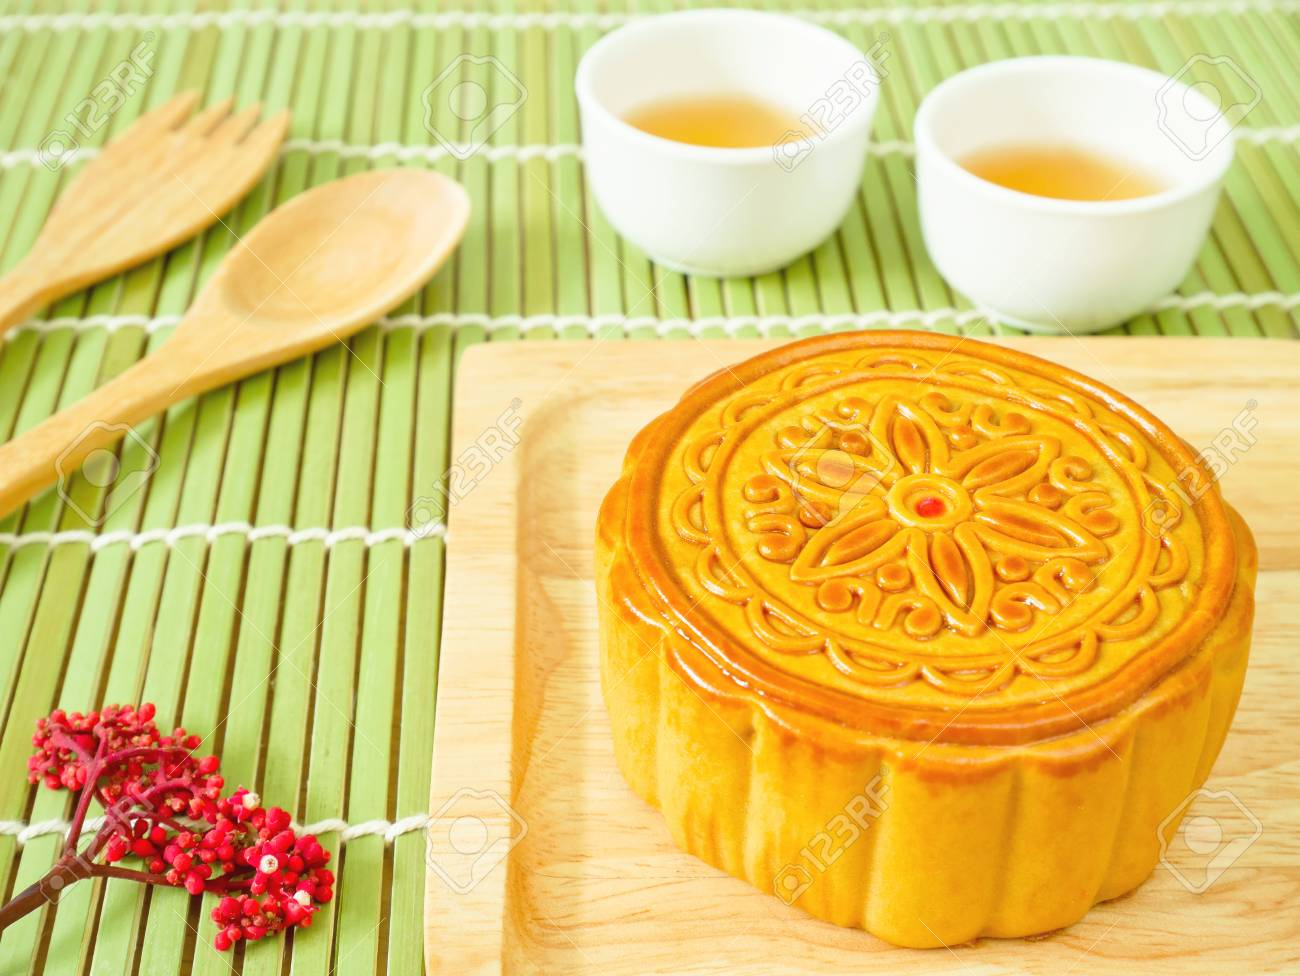 Mooncake on a wooden plate for Mid-Autumn Festival or Mooncake